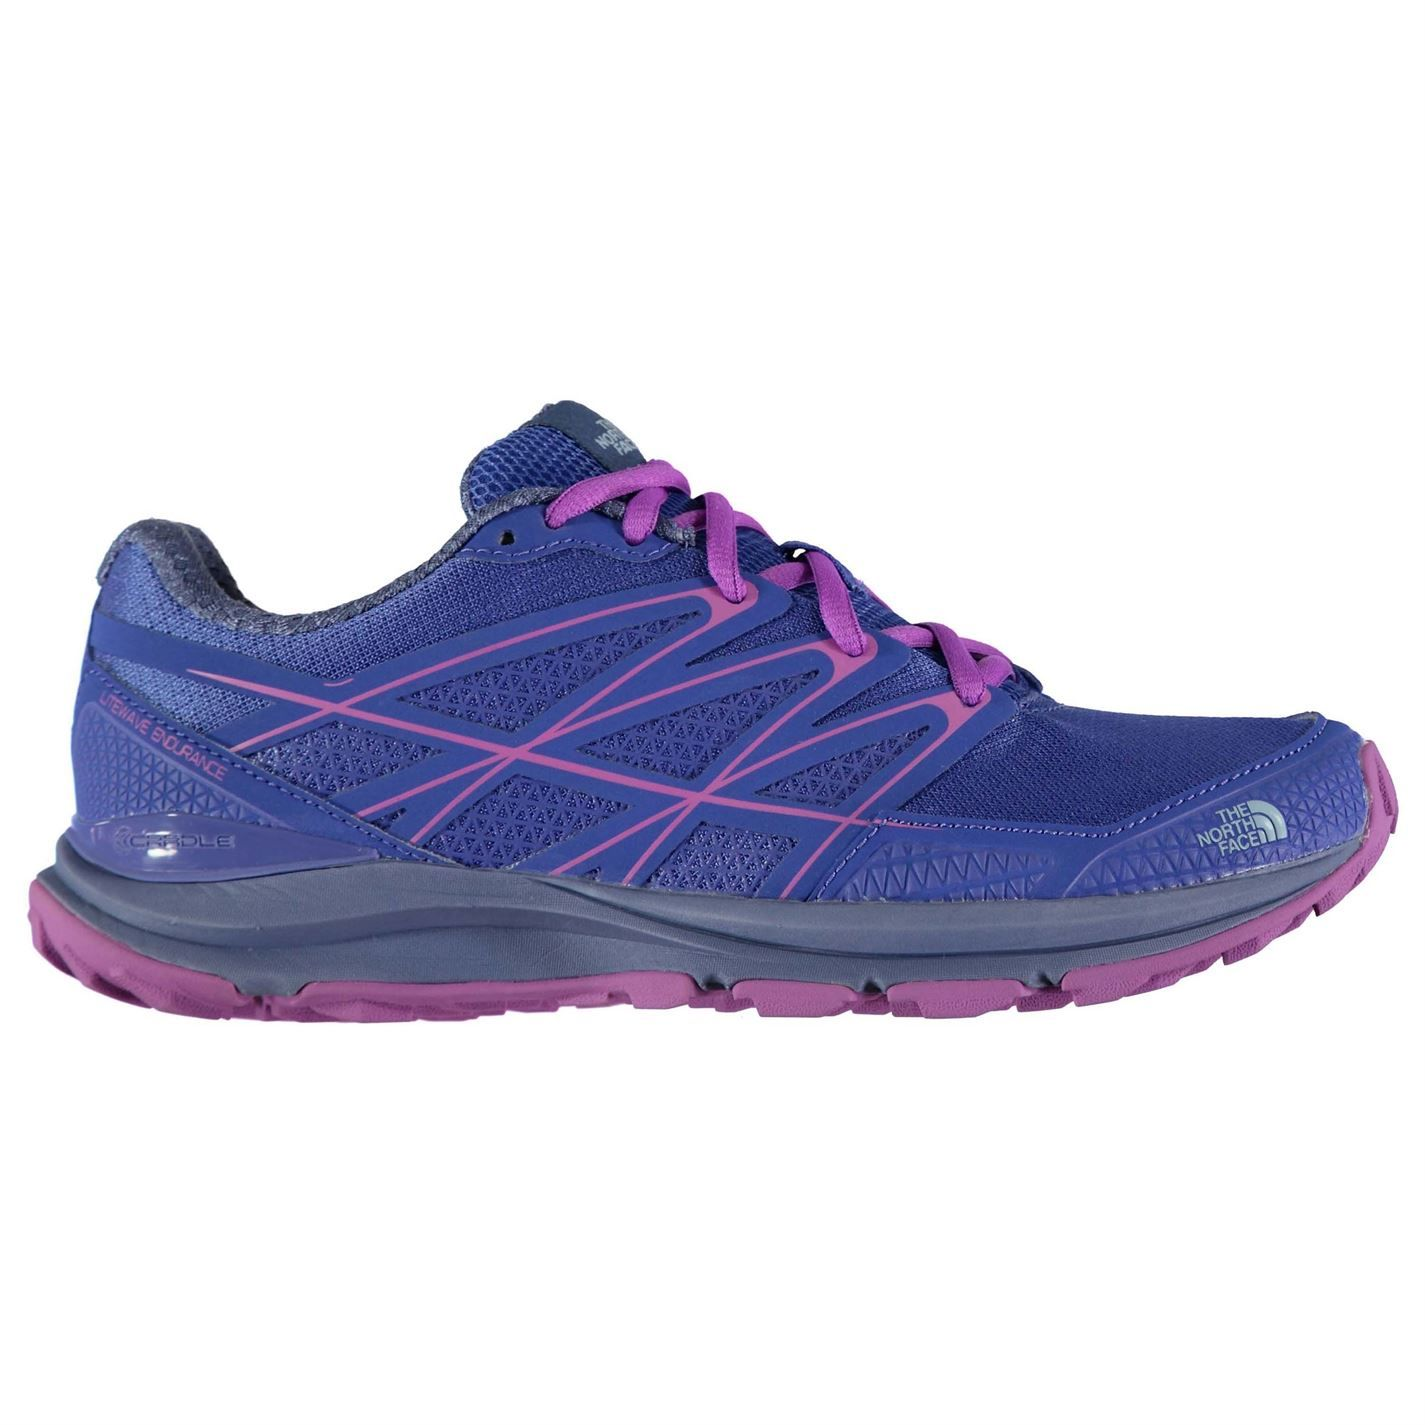 bd869109451 The North Face Litewave Running Shoes Ladies (18703418_8) - Sports ...